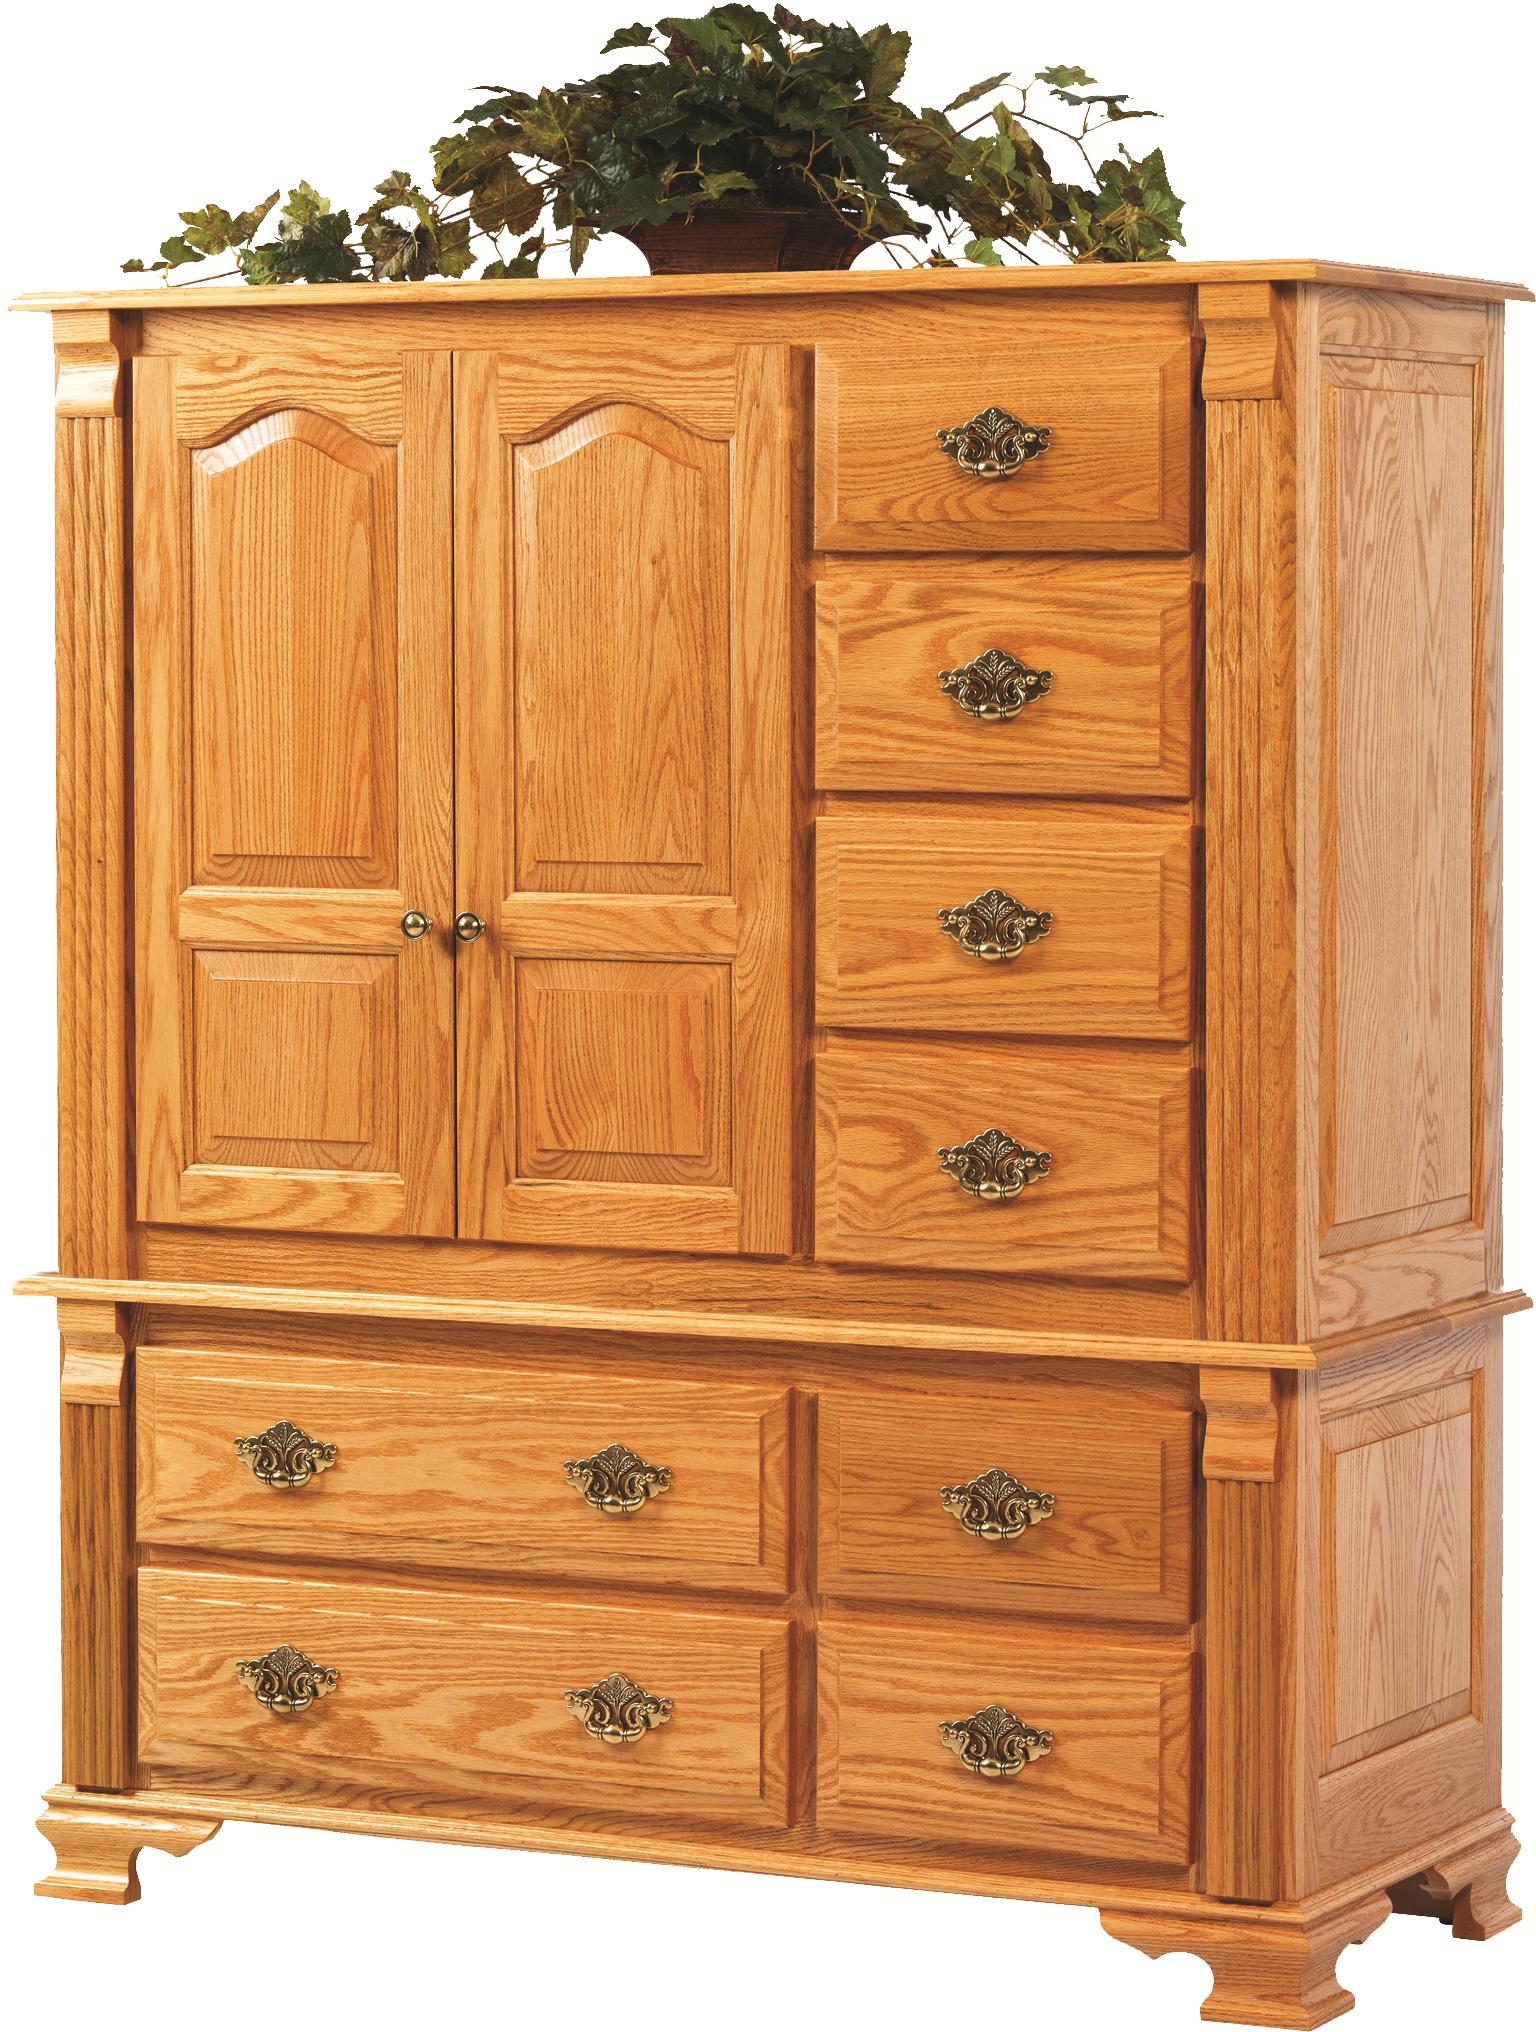 Journeys End Grande Chest by Millcraft at Saugerties Furniture Mart